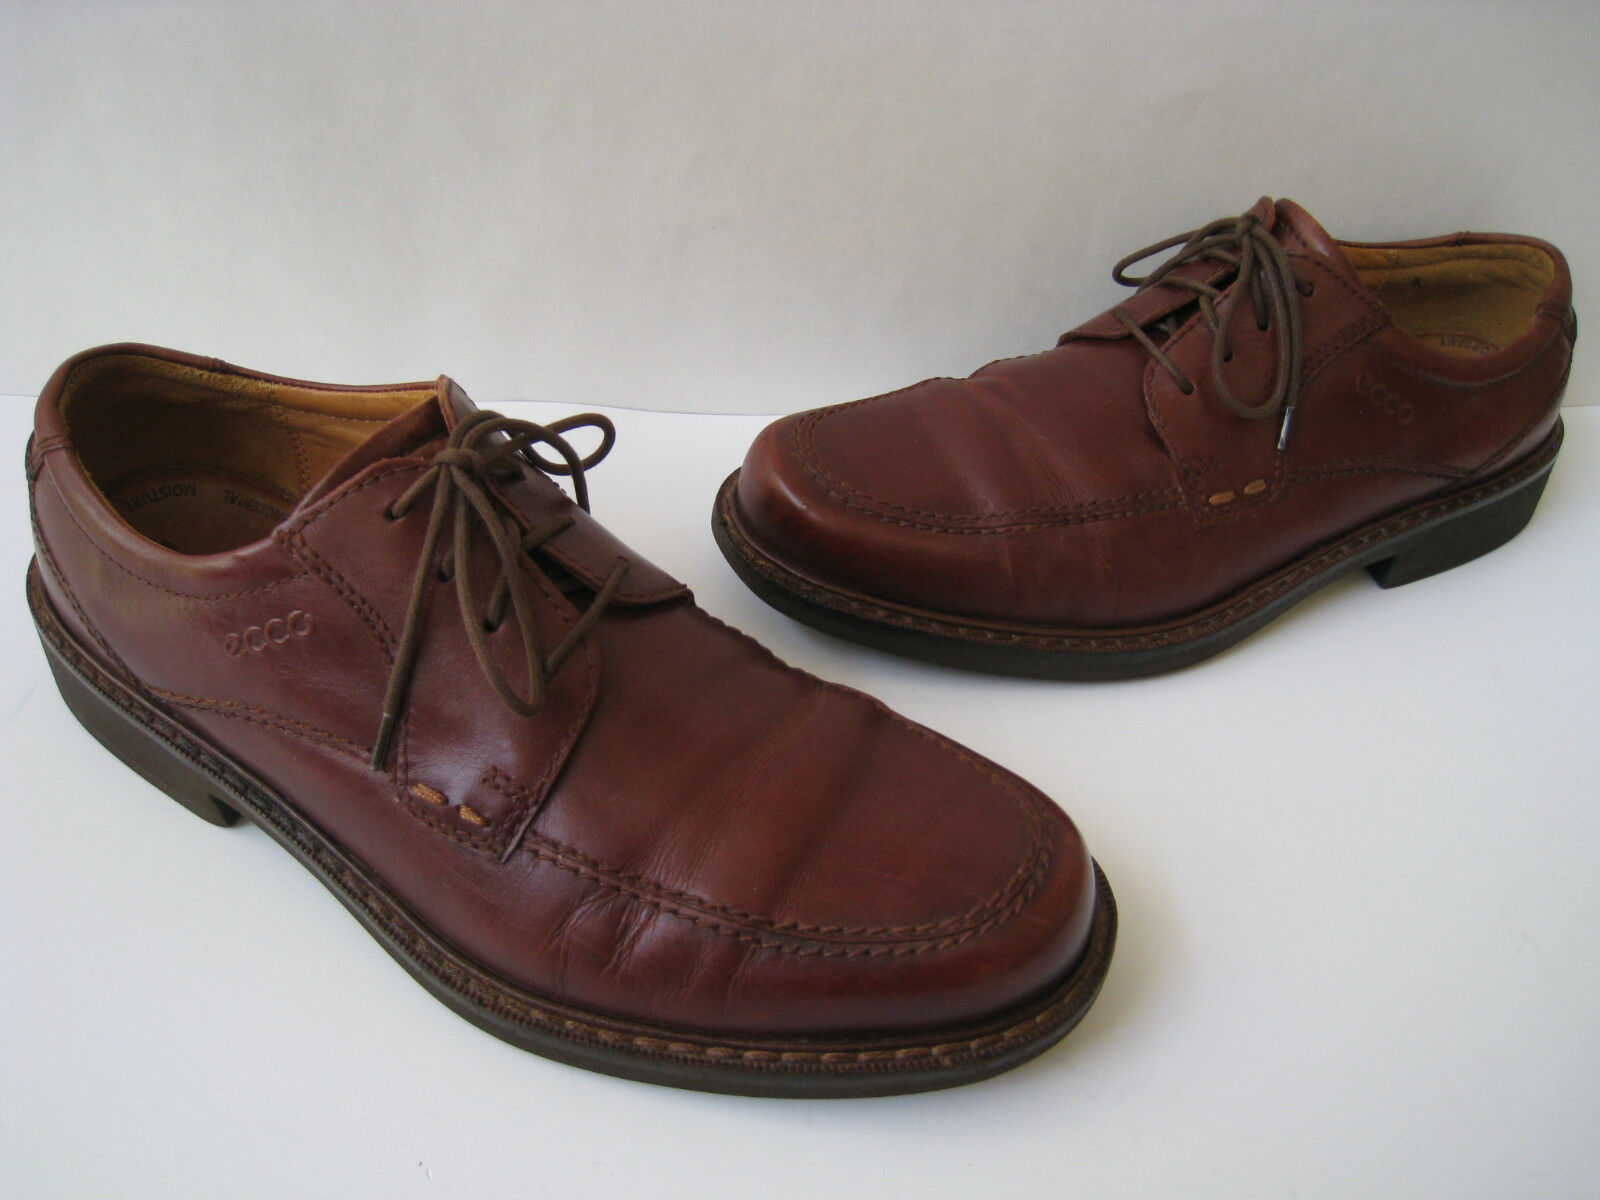 1f88bb7dd7d8 ECCO ECCO ECCO CHESTNUT VEGETABLE TANNED LEATHER OXFORDS MEN SIZE US 8-8.5  NICE 278a8c